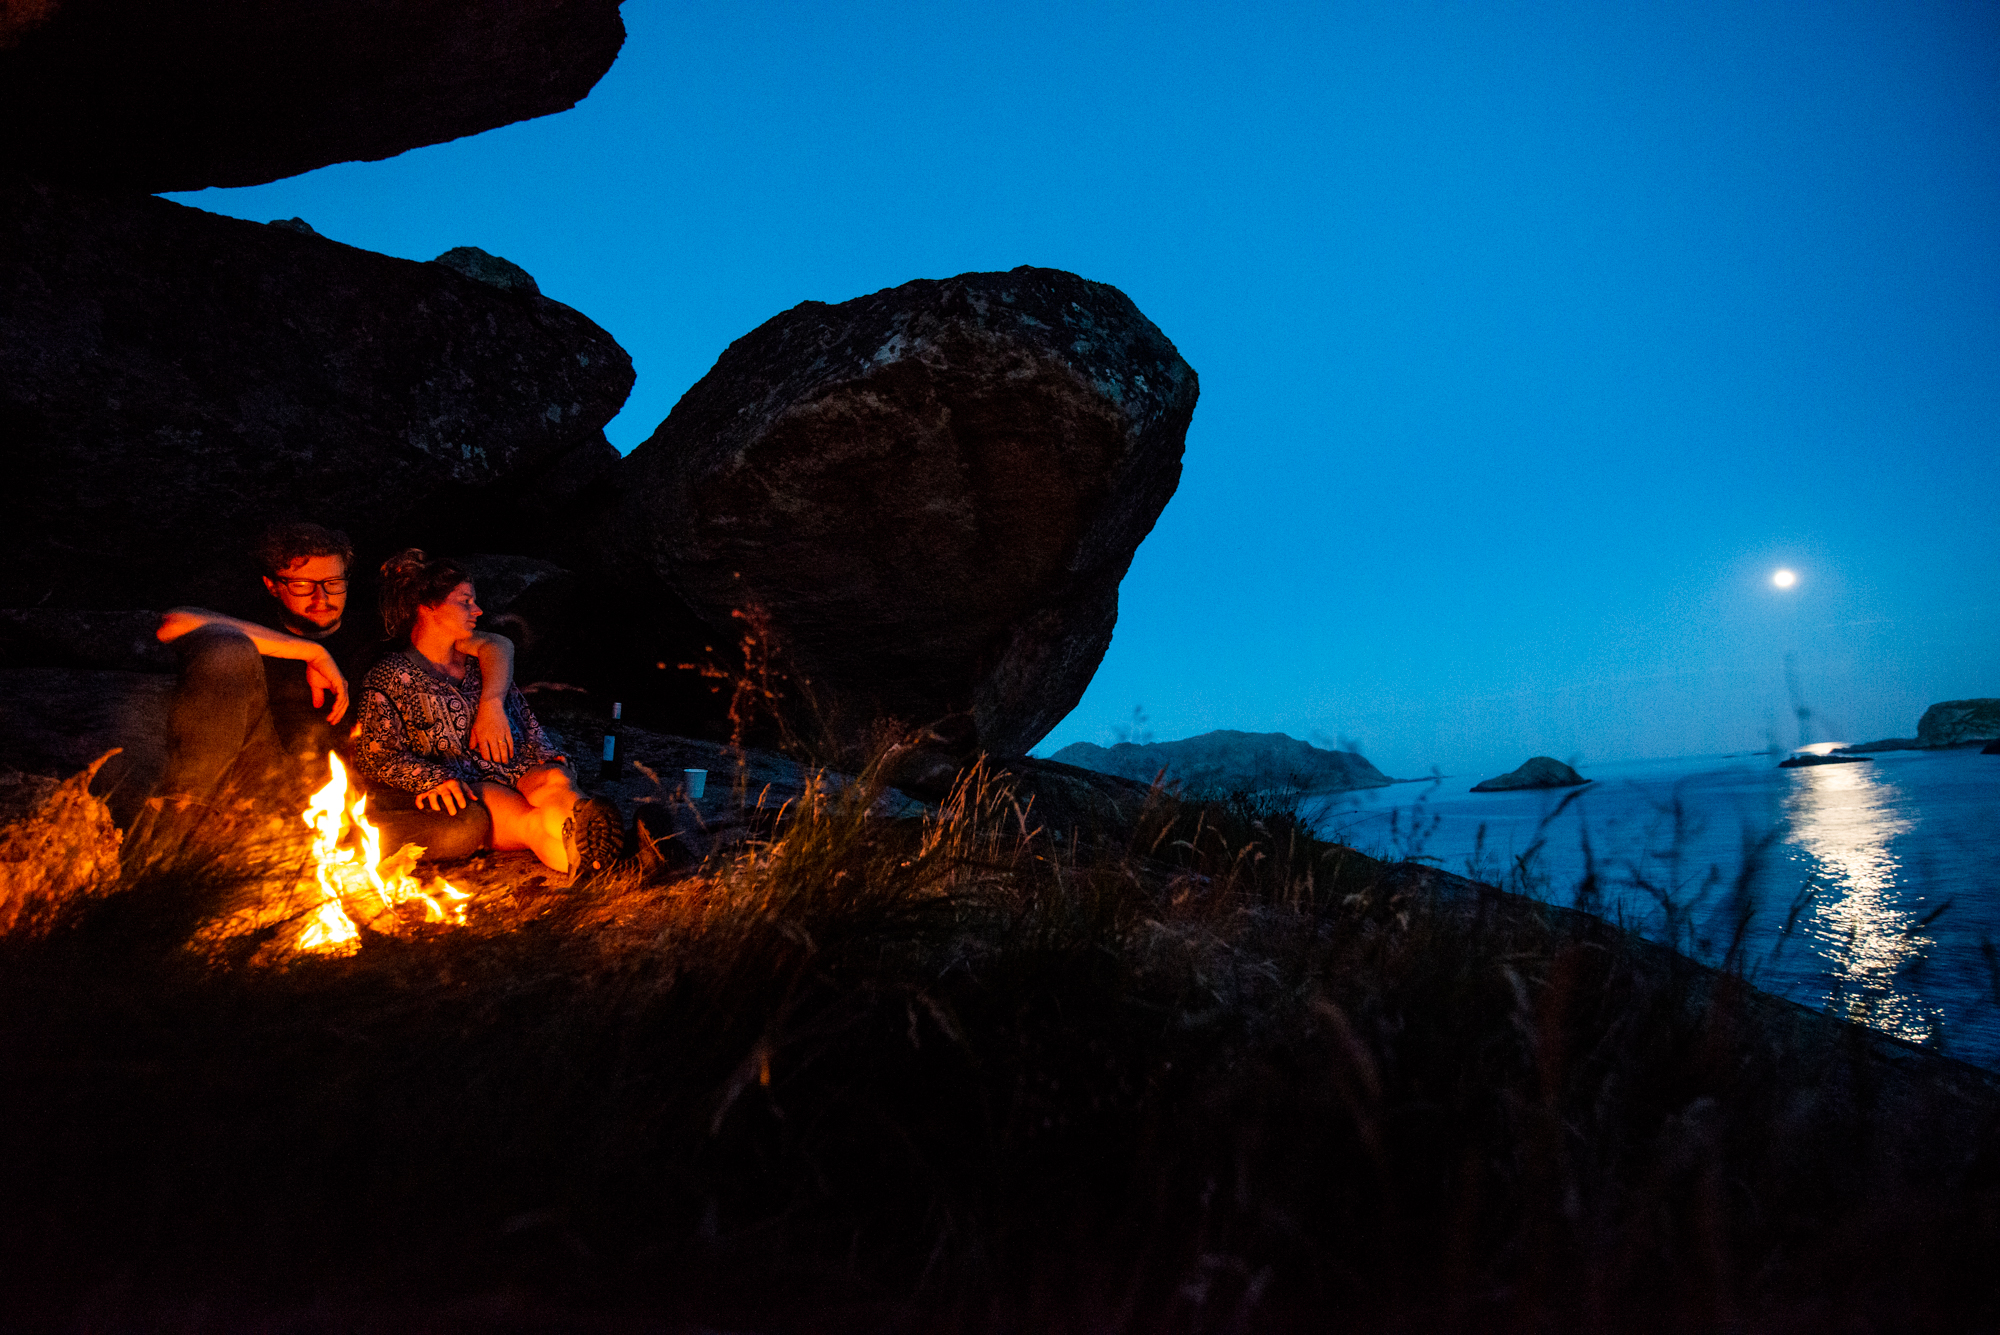 Ellisandme camping at a cave close to the ocean with a fire and a full moon reflecting on the sea. Norway.